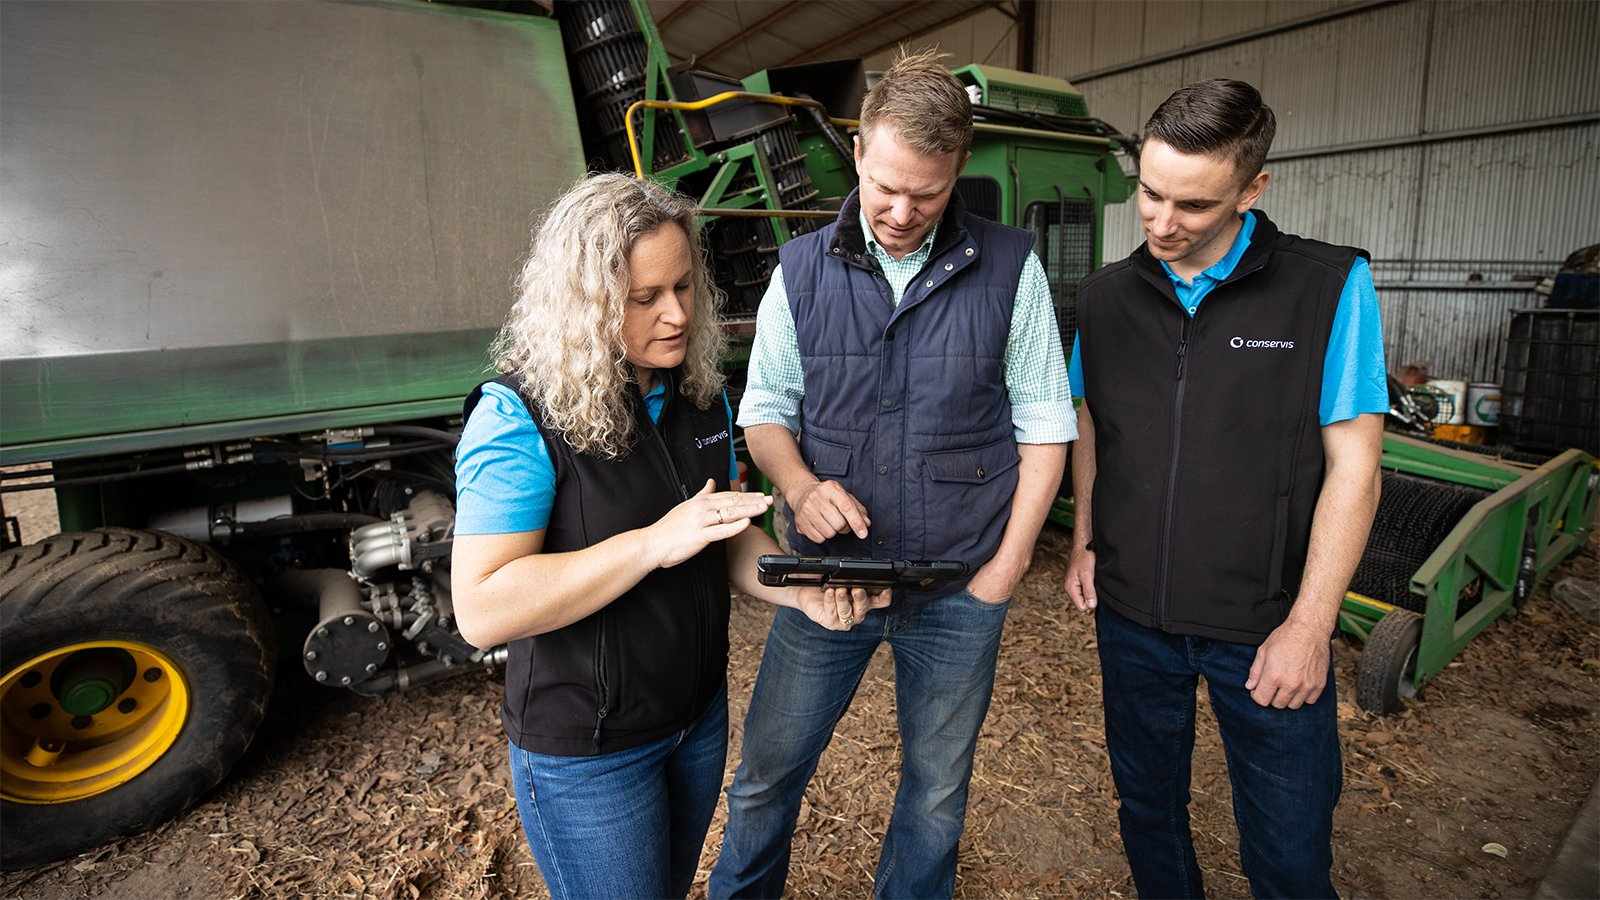 Conservis Customer Success standing with a customer on farm performing services with a tablet